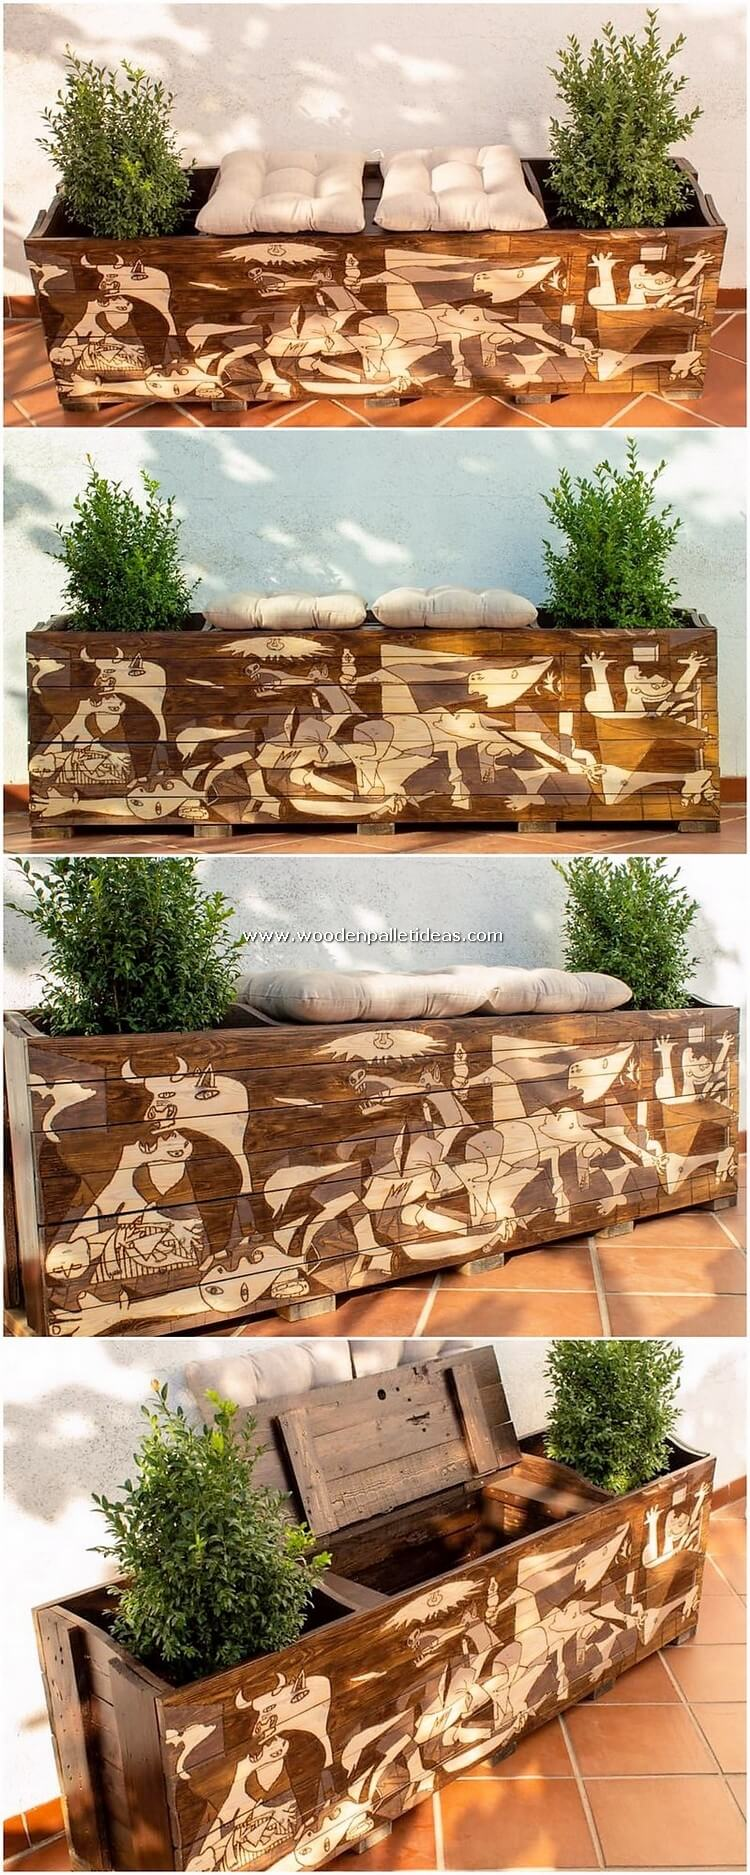 Pallet Seat with Storage and Side Planters